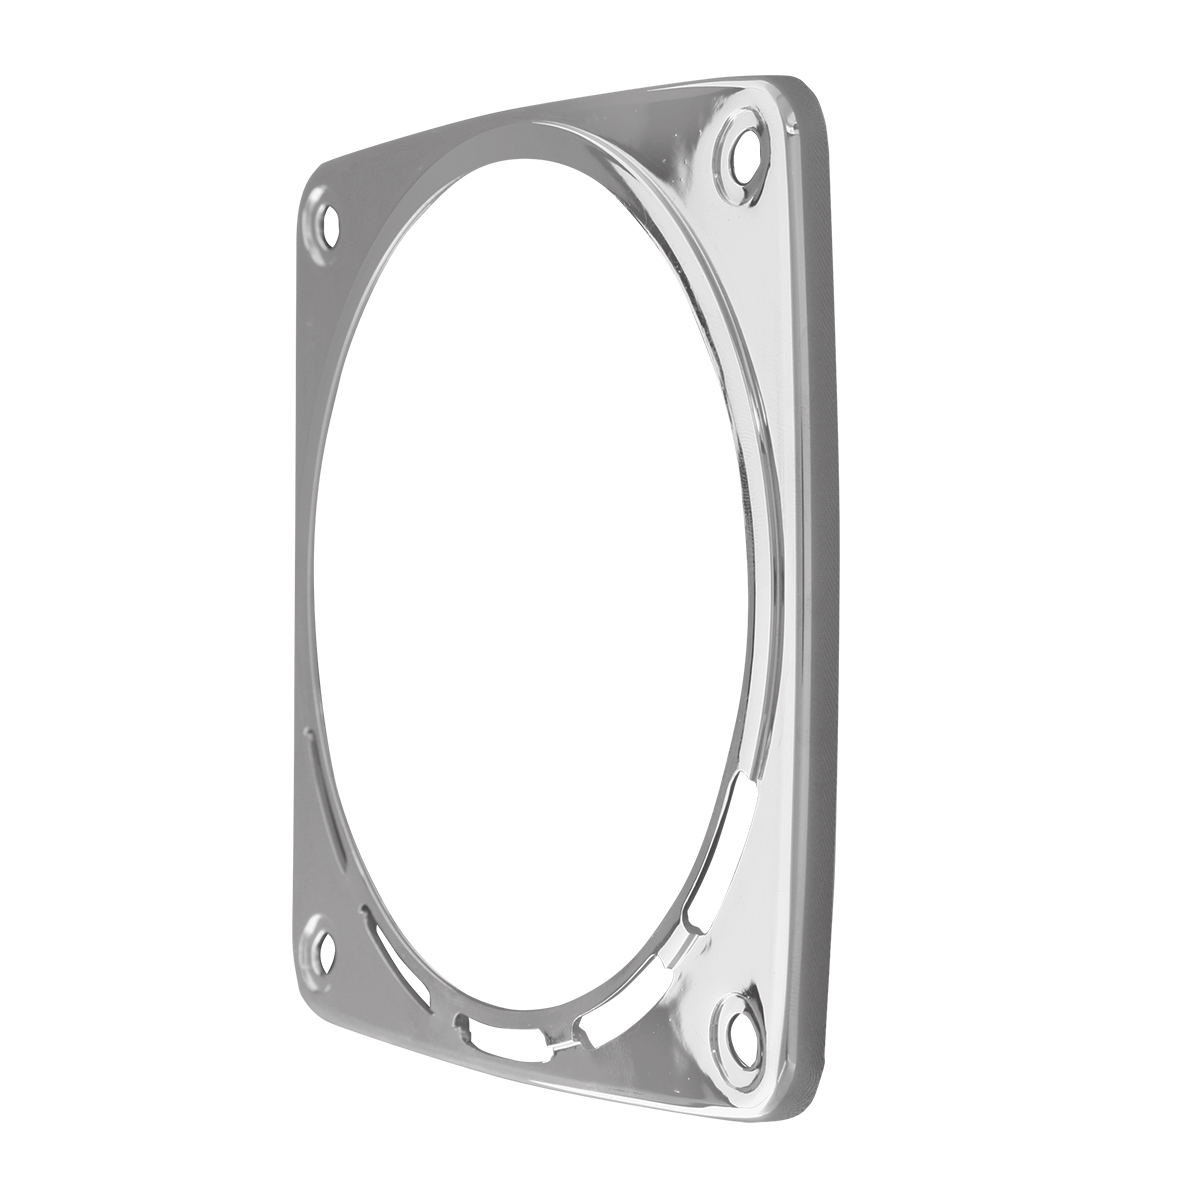 80359 Chrome Plastic Bezel w/o Visor for Square Double Face Pedestal Light